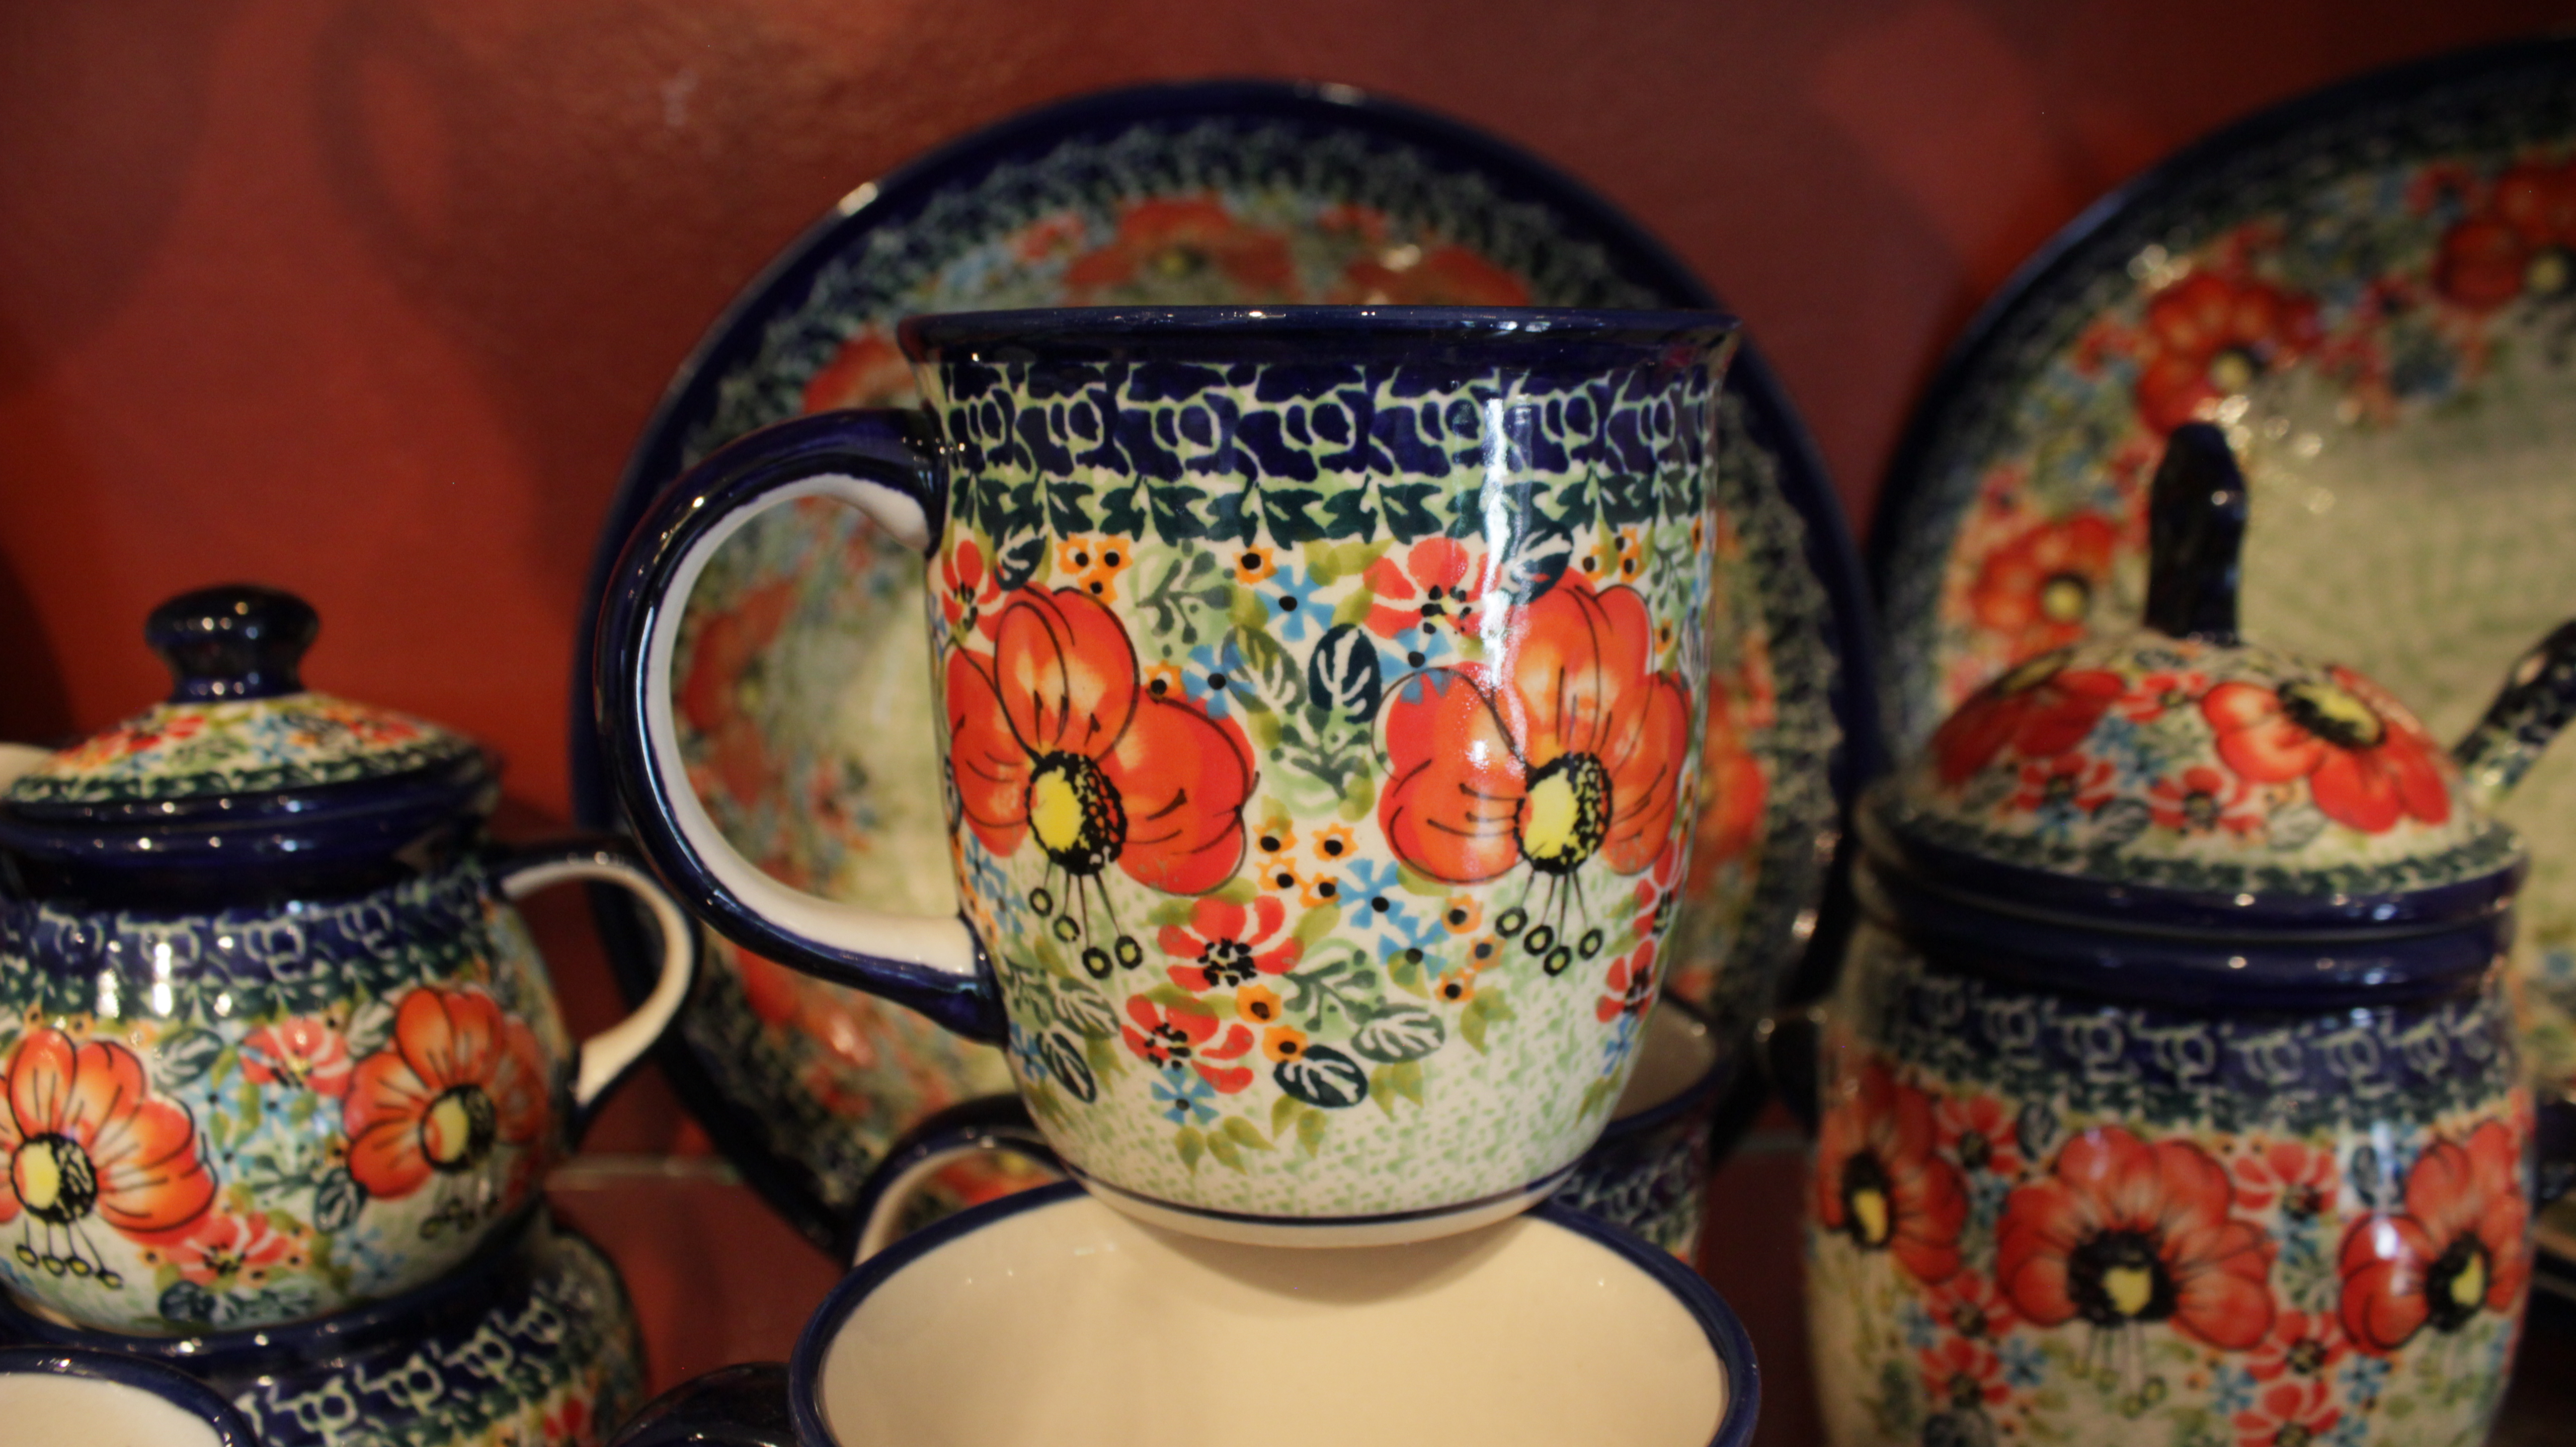 The Pottery Avenue Cottage, a boutique specializing in Polish stoneware, opened its doors for business with a ribbon-cutting ceremony, St. George, Utah, June 3, 2016 | Photo by Don Gilman, St. George News